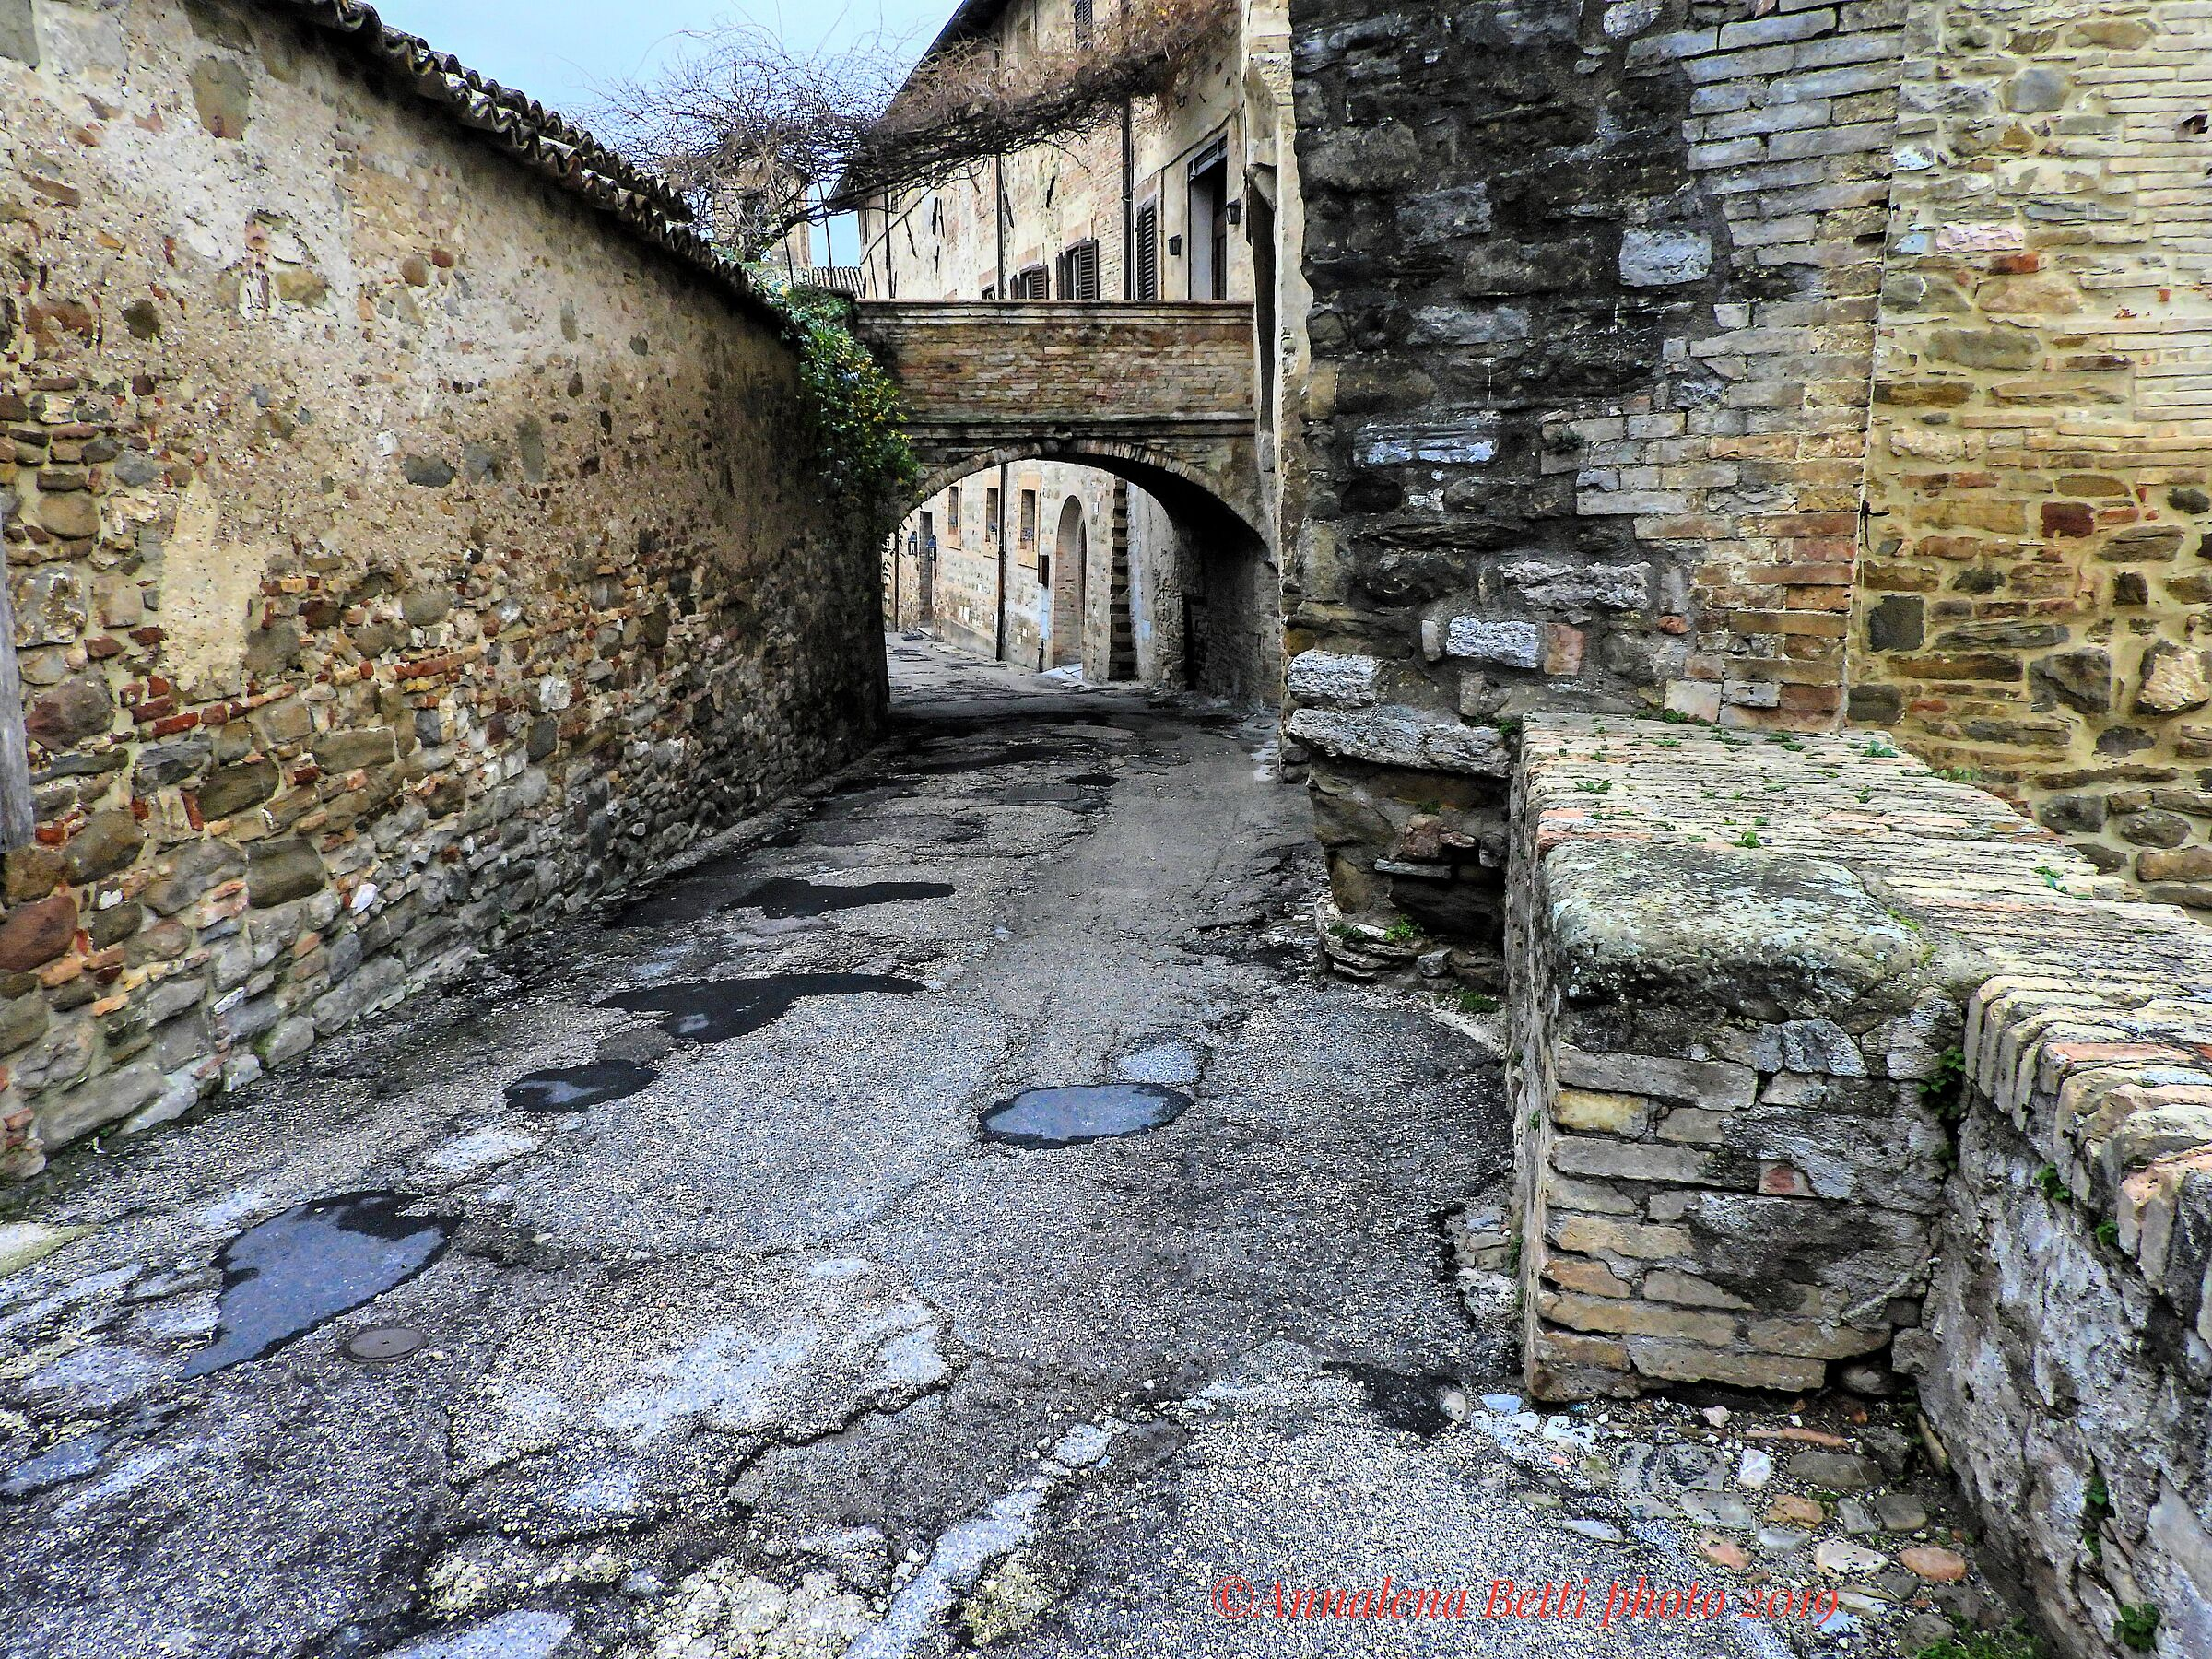 For the alleys of Bevagna in Umbria...